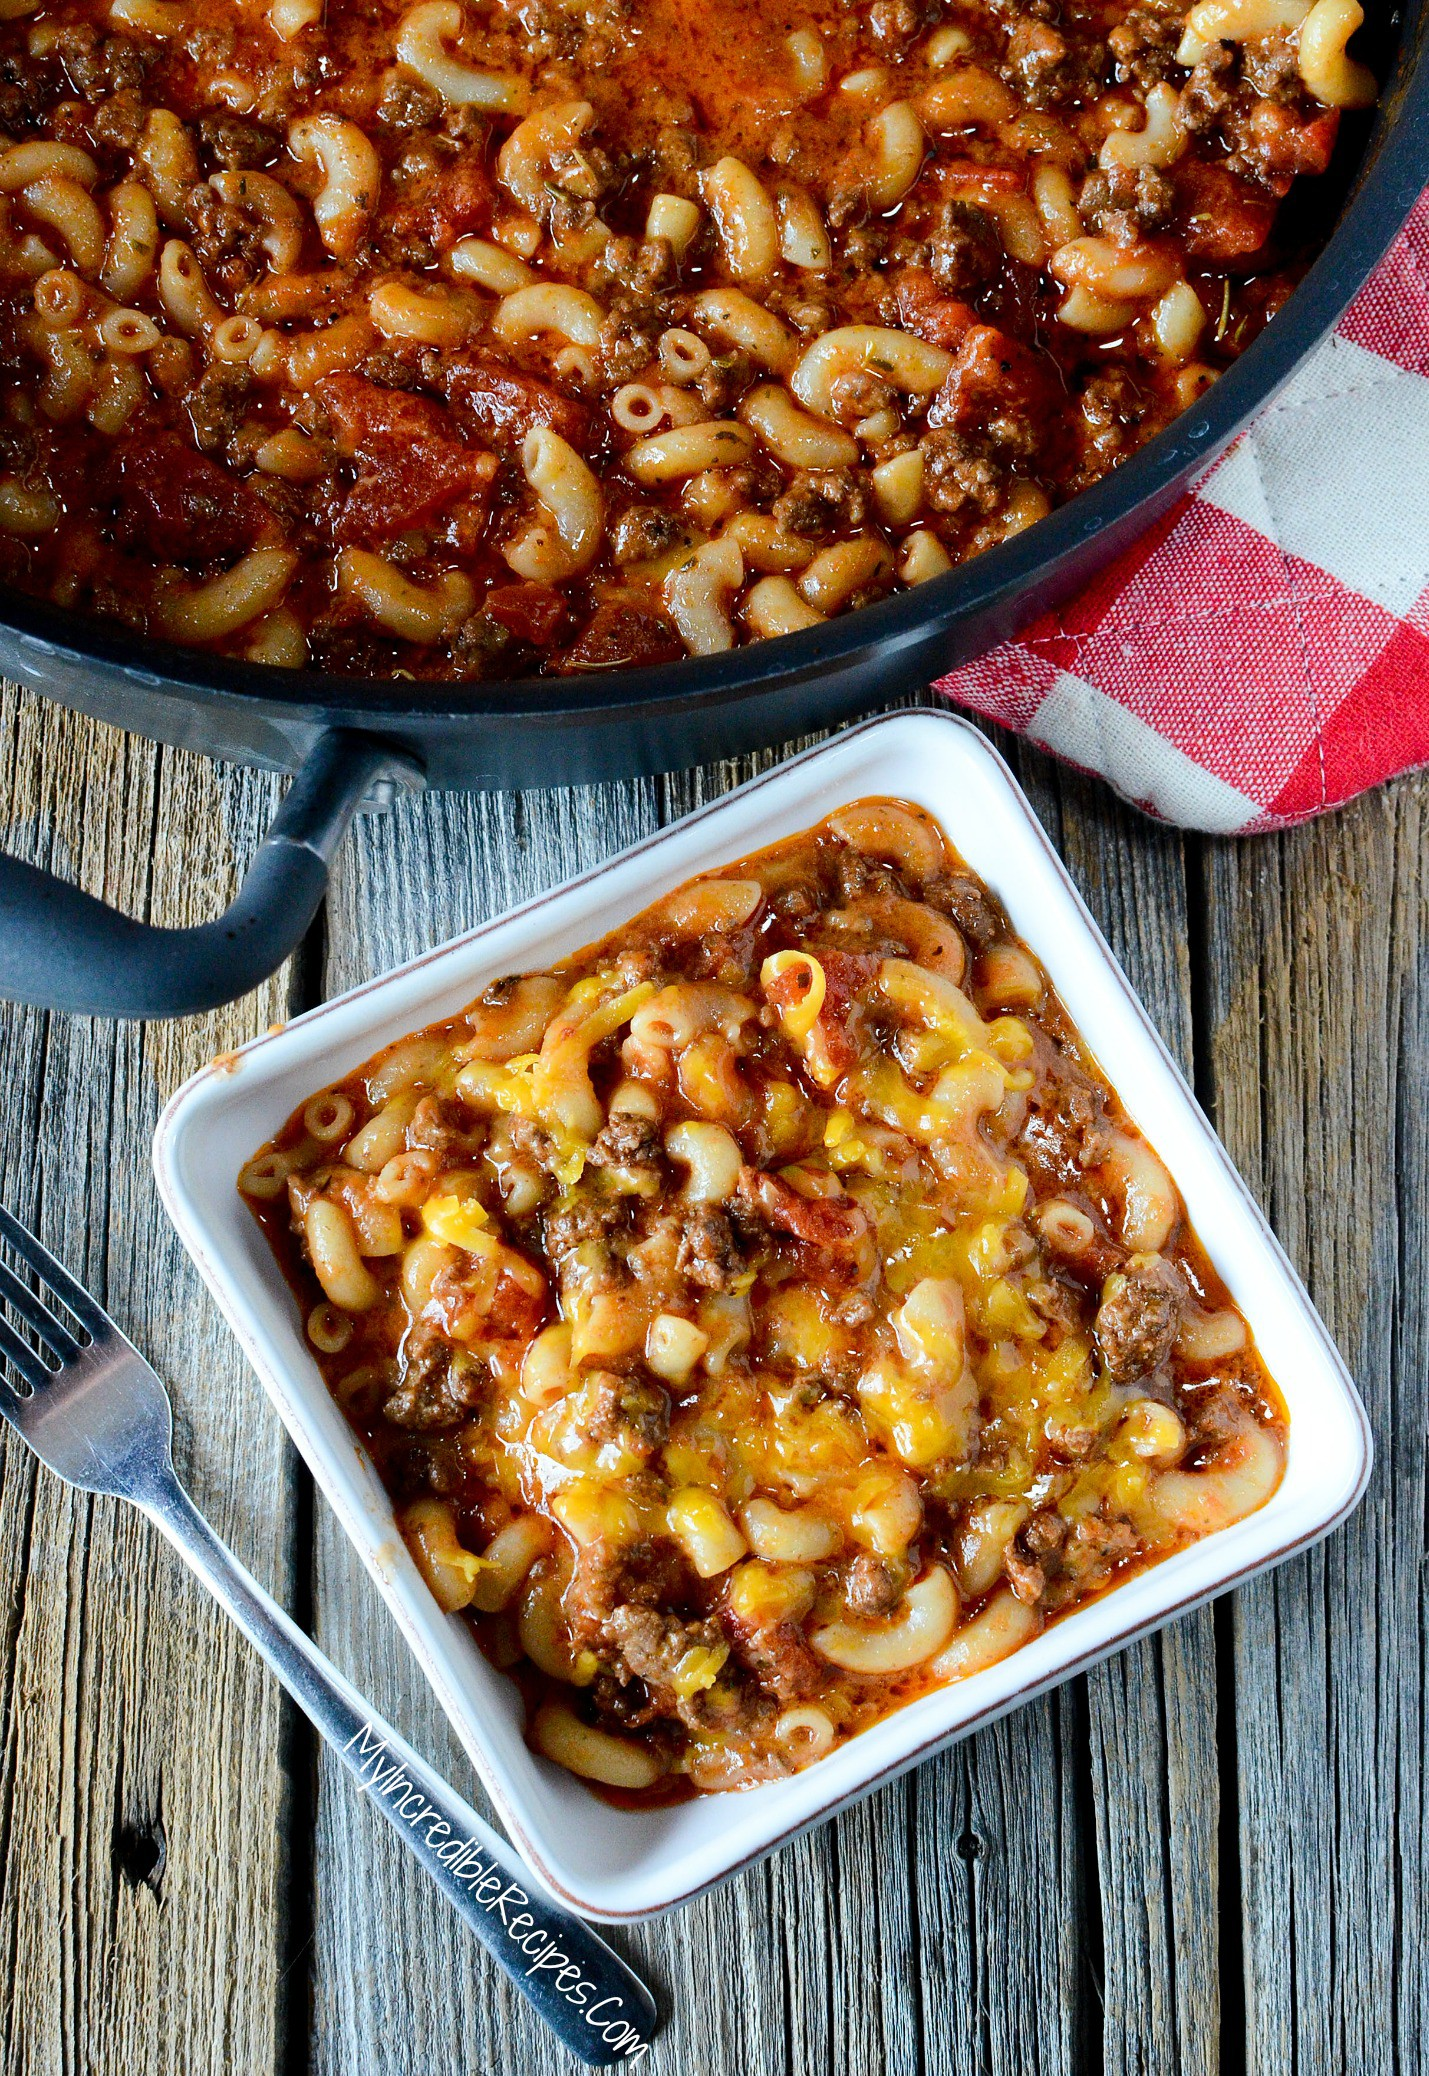 Famed Fashioned Goulash Courtney Carra Copy Me That Fashioned Goulash Pinterest Fashioned Goulash Recipe From Facebook nice food Old Fashioned Goulash